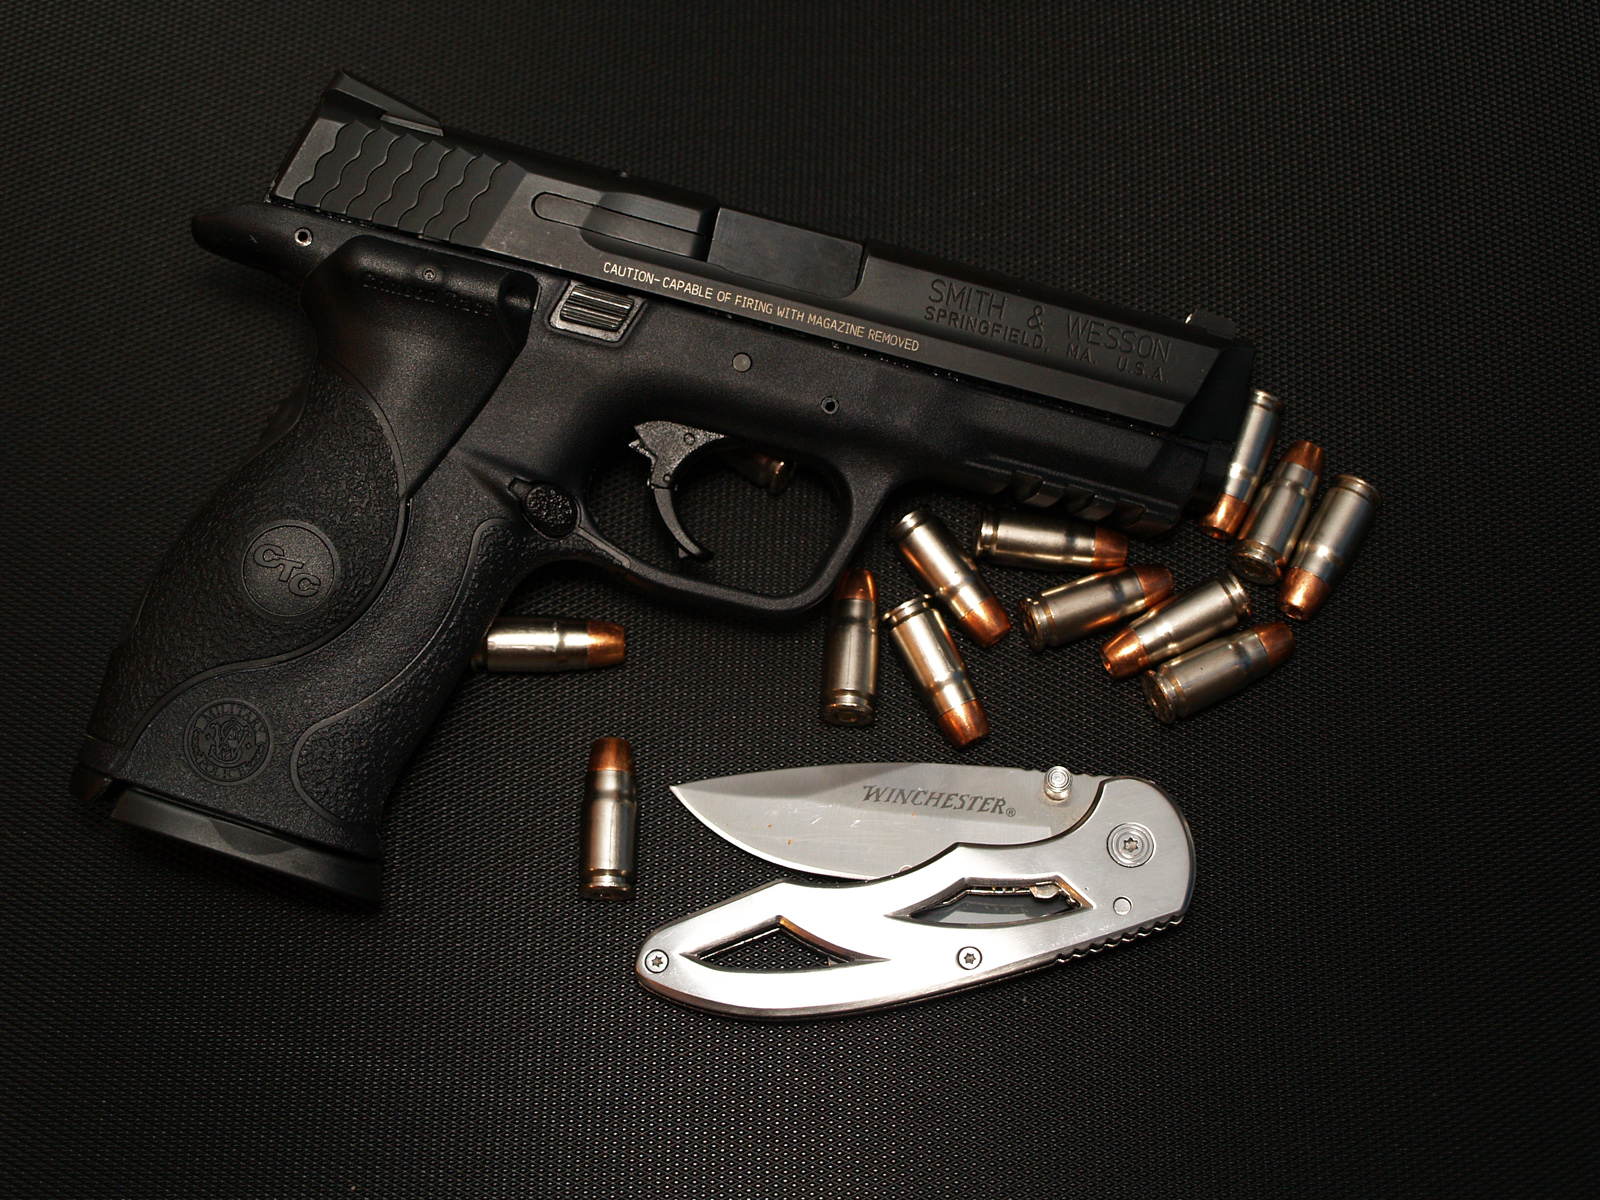 Smith Wesson Photos HD Wallpapers Military WallBase 1600x1200